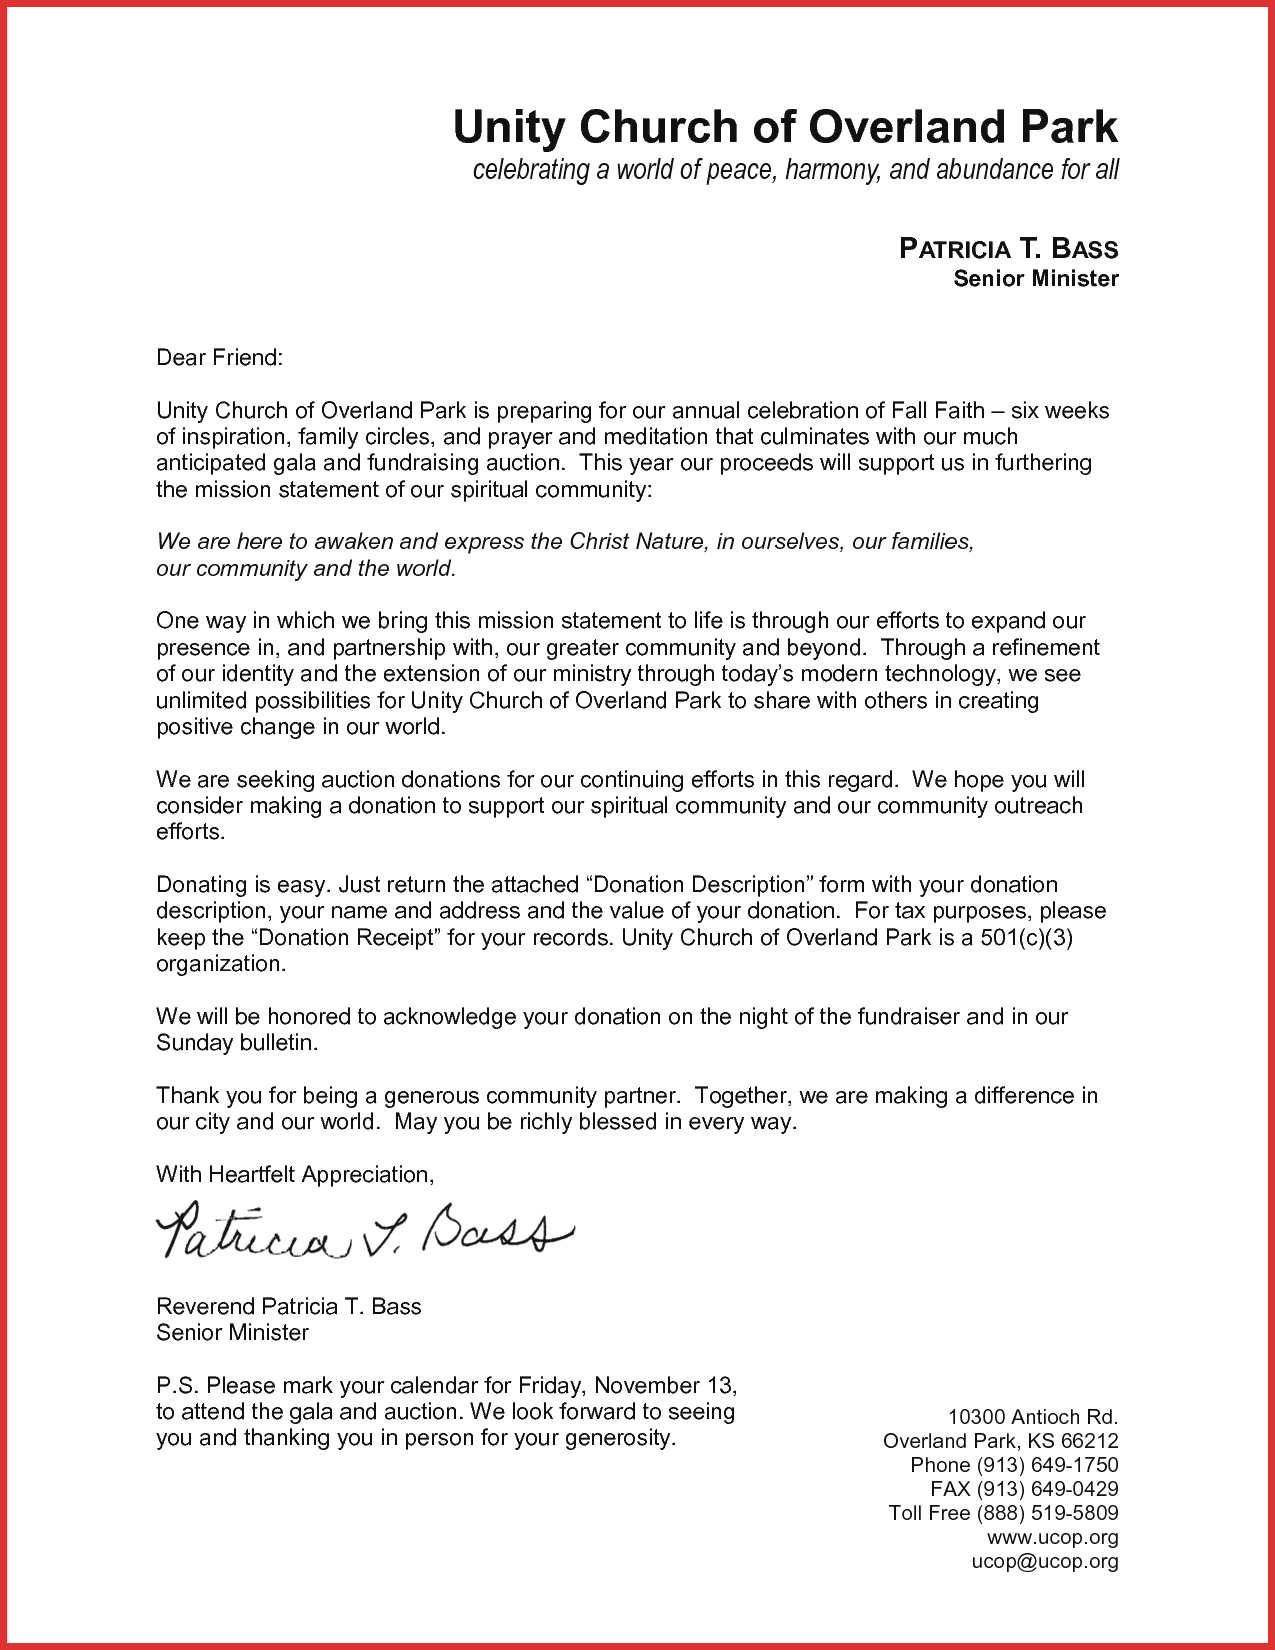 Mission Fundraising Letter Template Collection | Letter ...